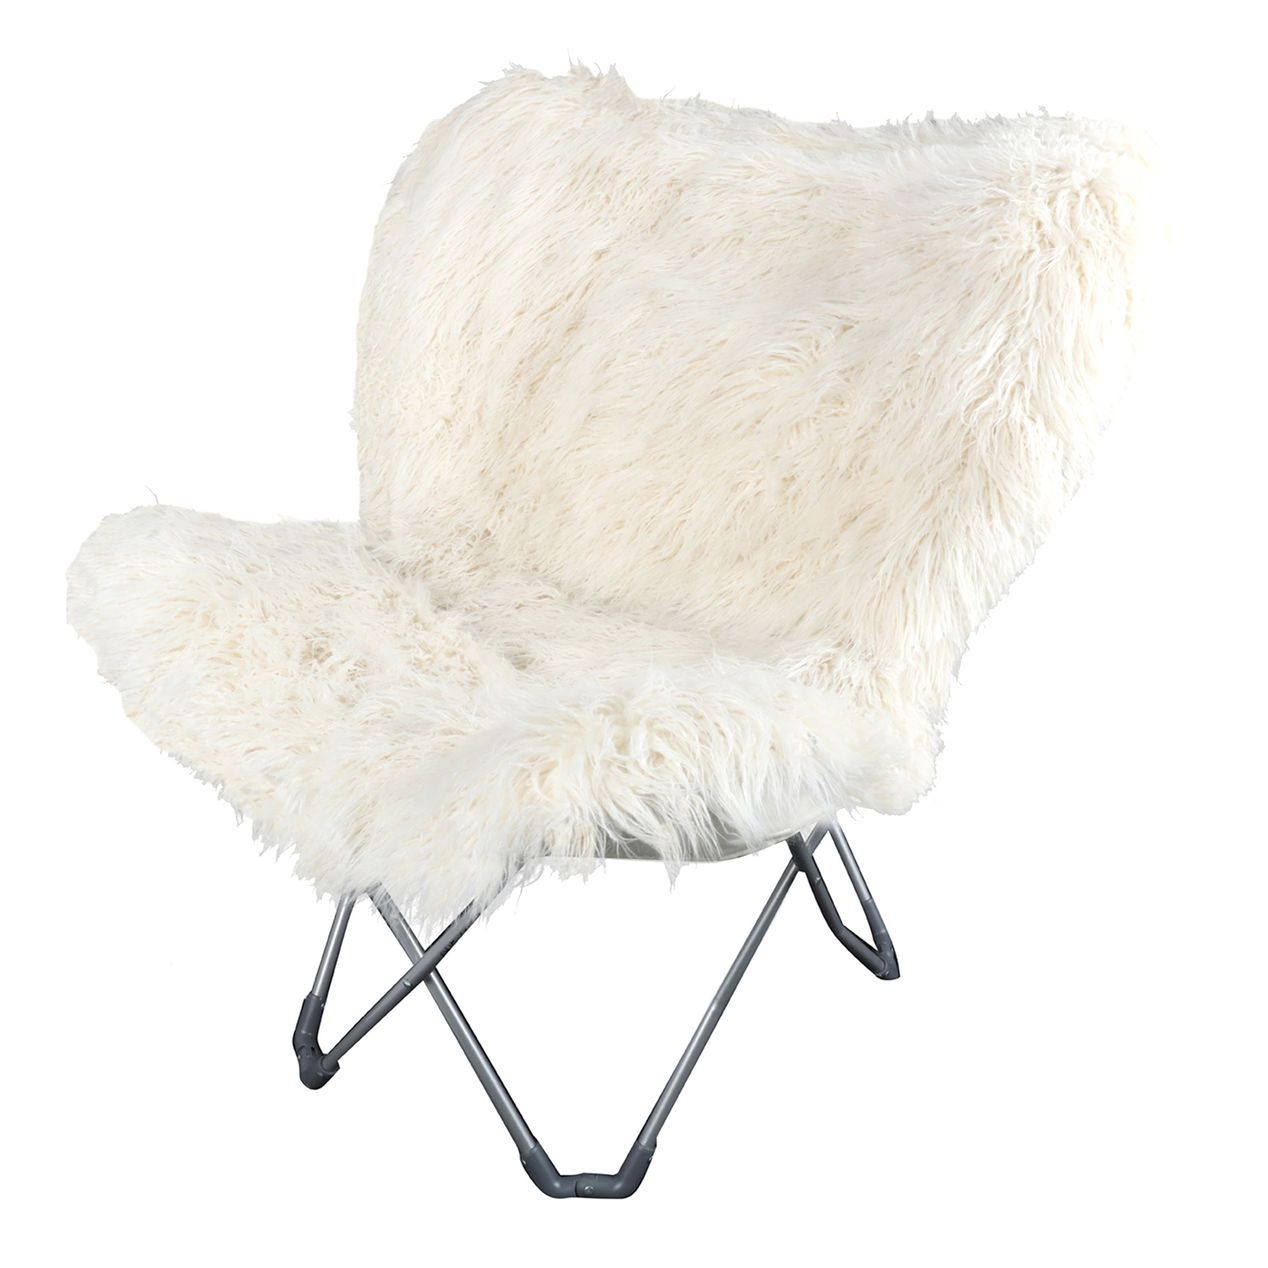 Fur Butterfly Chair White Fur Butterfly Chair At Home L S Room Pinterest Chair